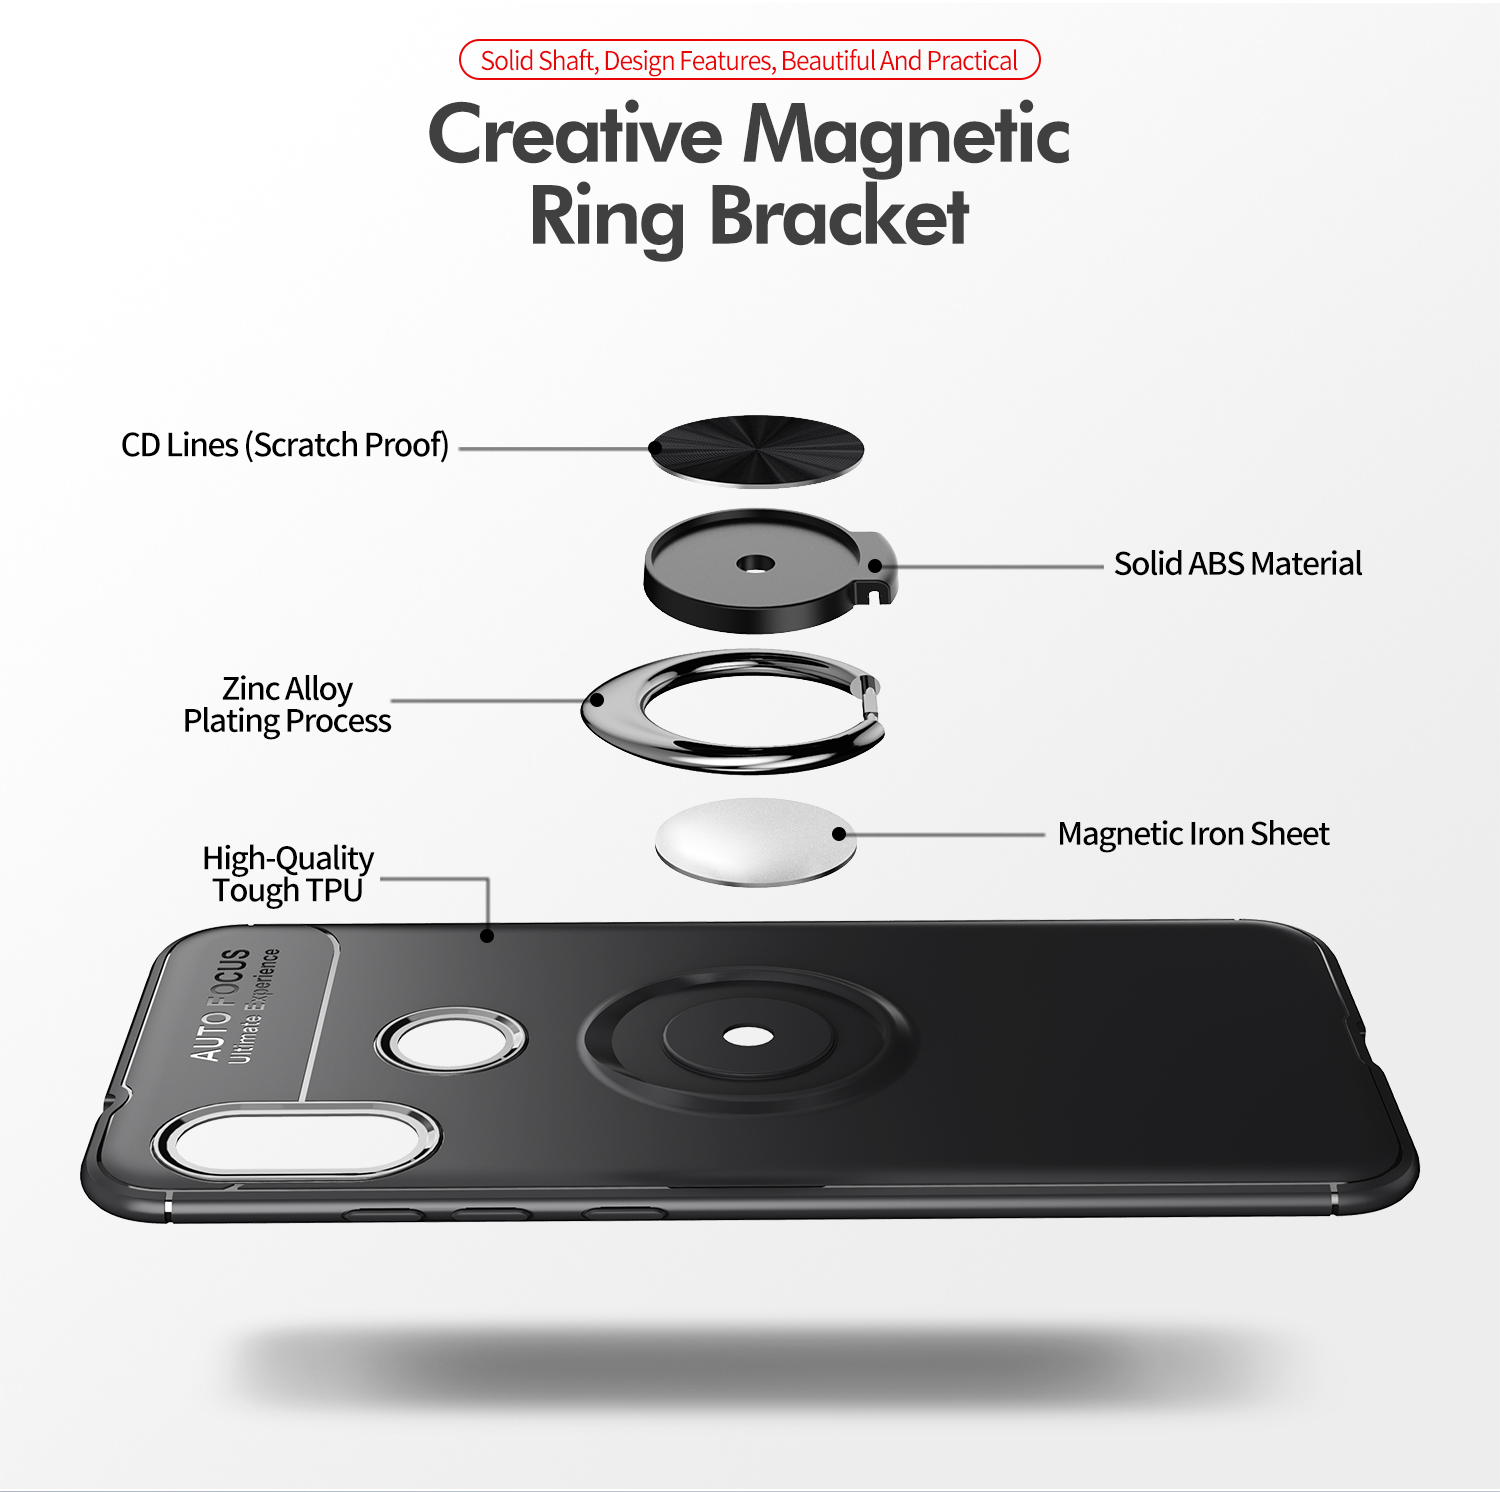 Bakeey 360° Adjustable Metal Ring Magnetic Protective Case for Xiaomi Mi A2 Lite/ Xiaomi Redmi 6 Pro